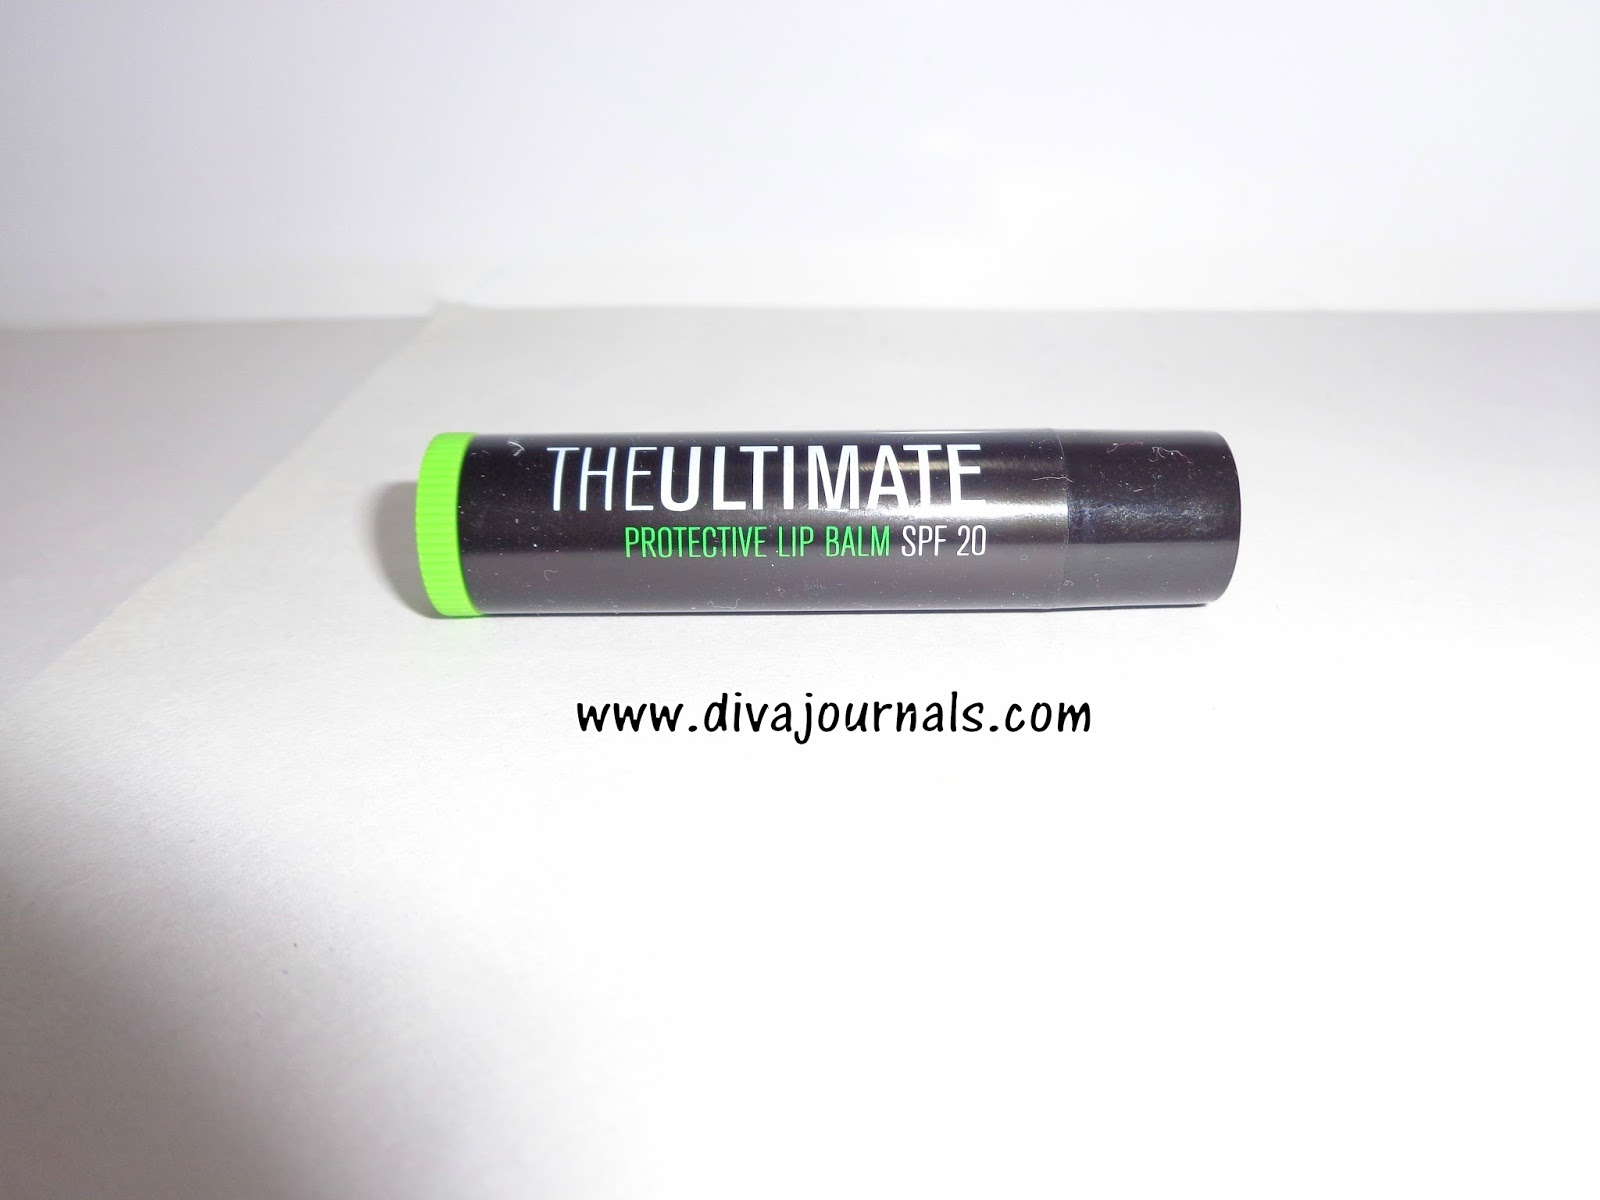 Garnier Men Lip Balm SPF 20 Review